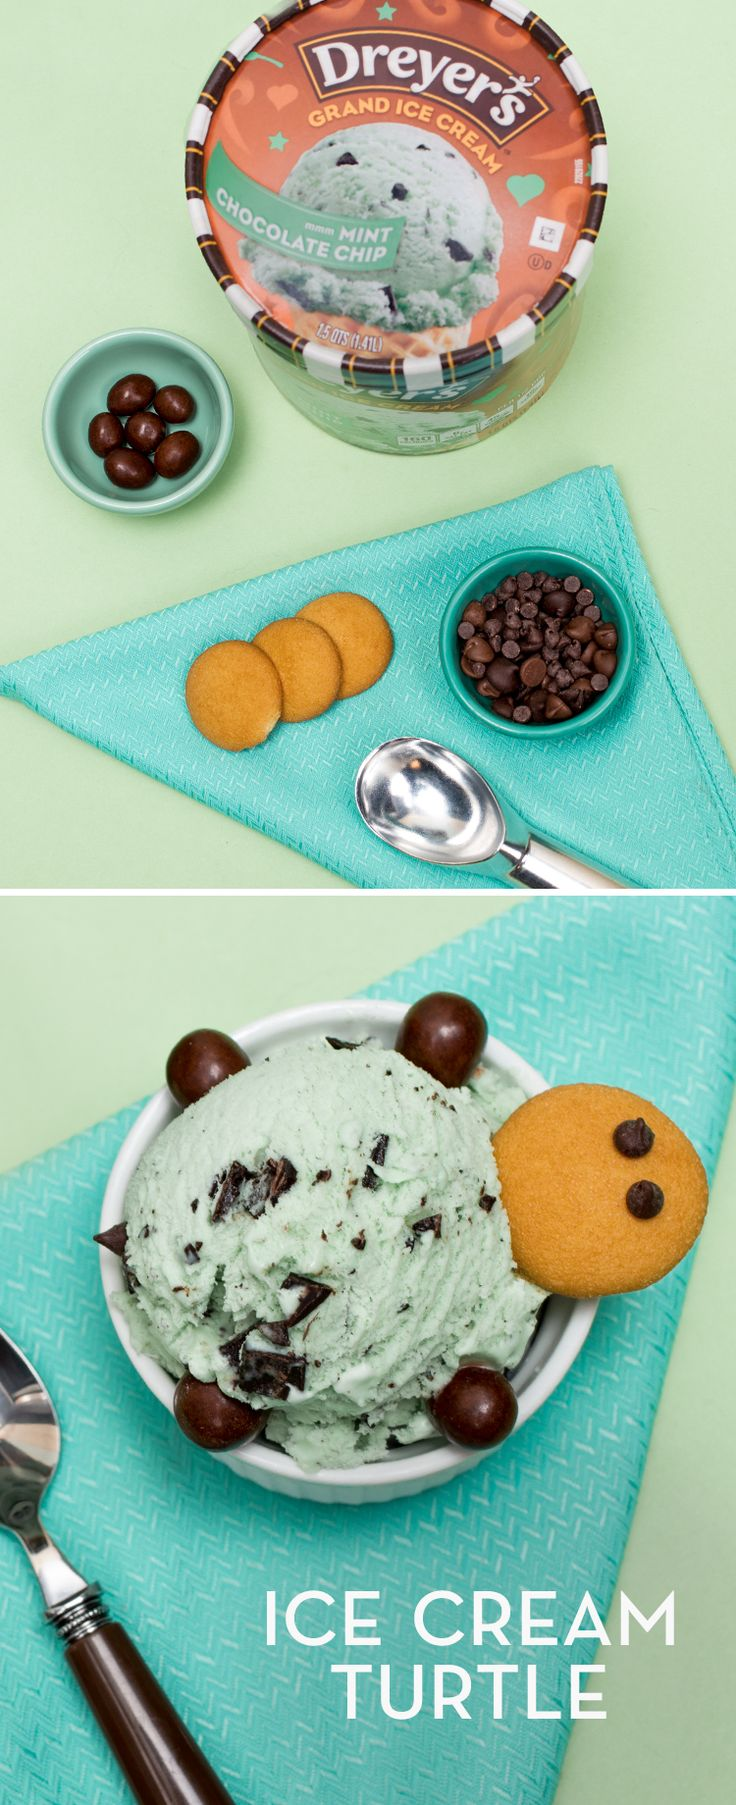 Dreyer's Ice Cream Turtle: This delicious dessert recipe is so simple, quick, and easy, you'll wonder if slow and steady really wins the race! Top a scoop of Mint Chocolate Chip ice cream with a large vanilla wafer for his head, four large candy pieces for his legs, a chocolate chip for his tail and two more for his eyes. Turtley awesome, isn't it?